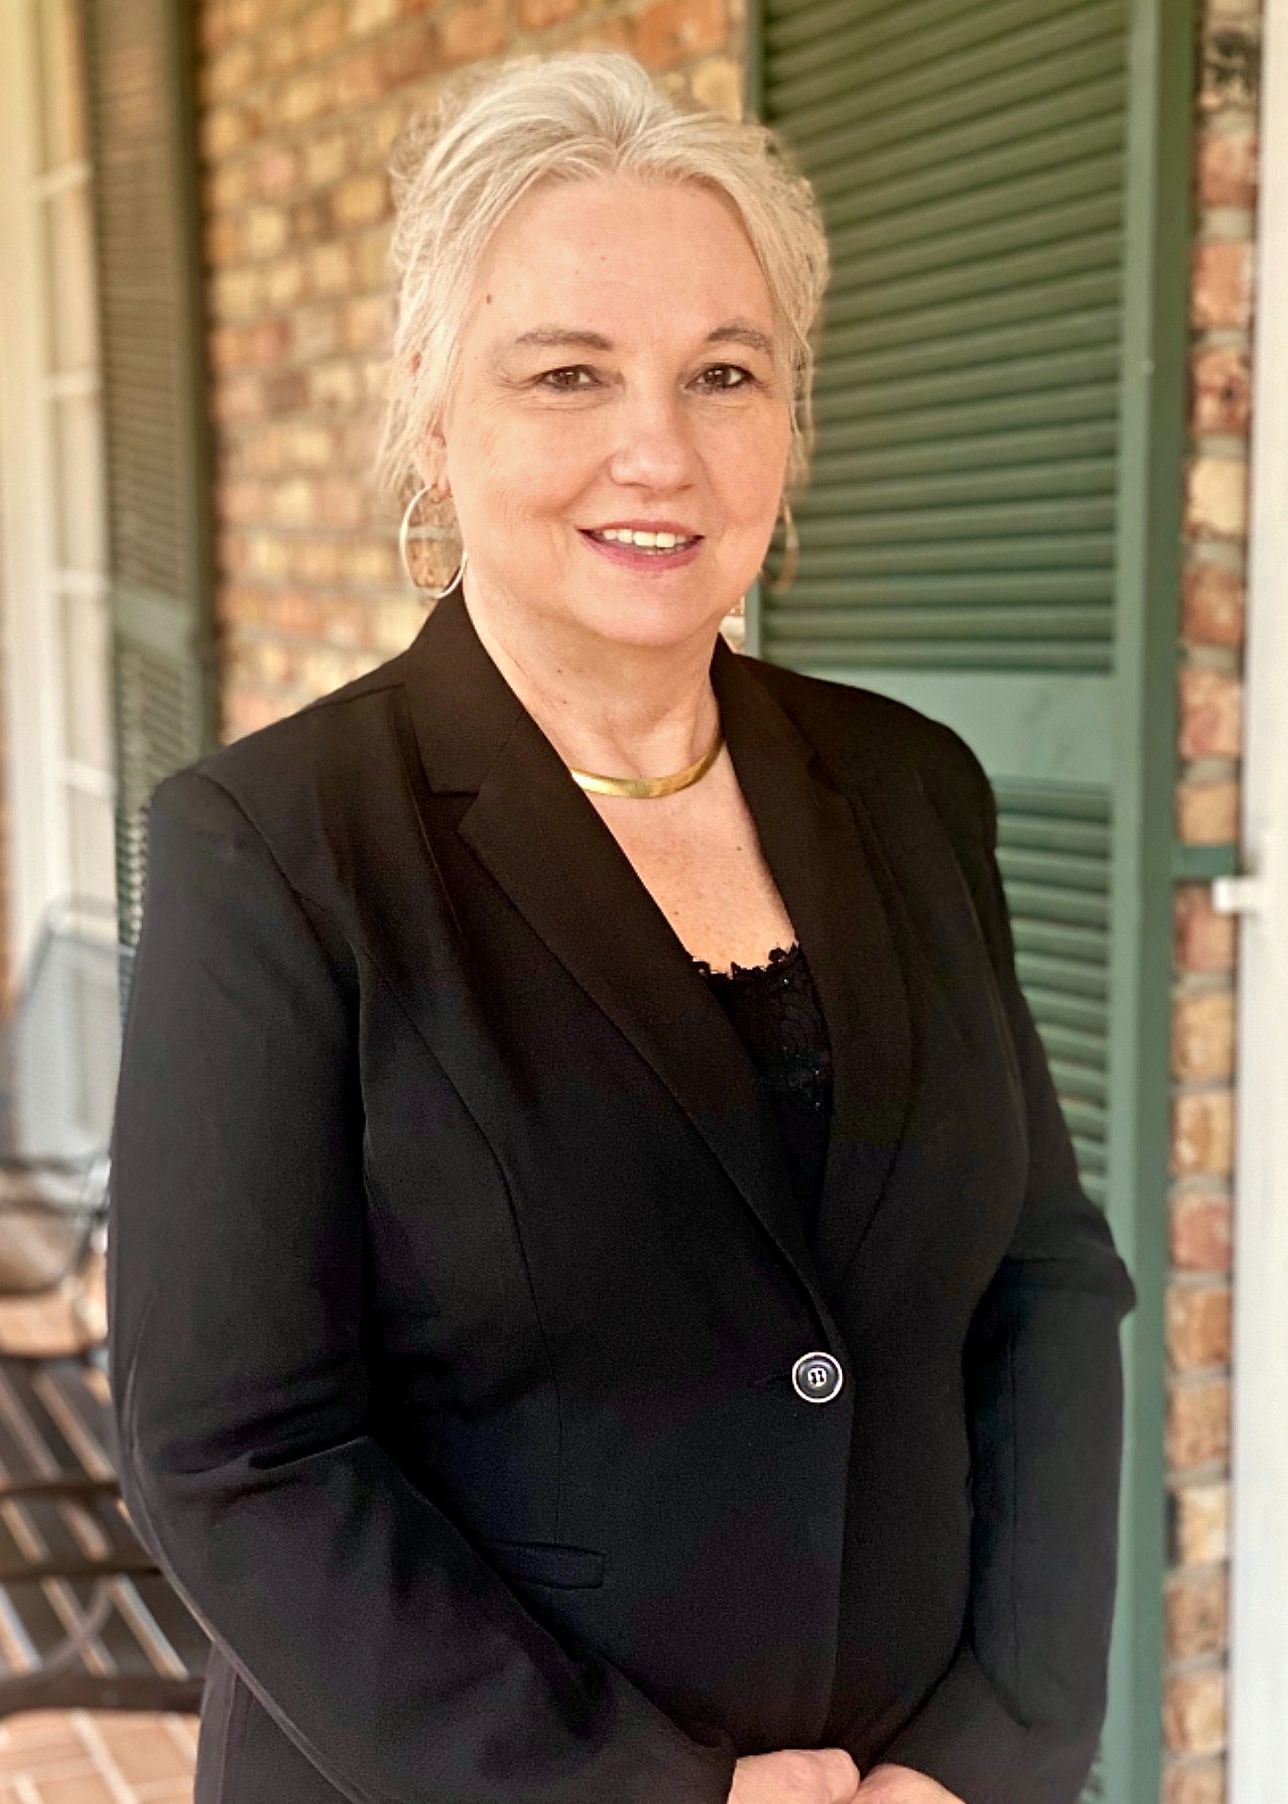 Photo of Marilyn Guidry - Funeral Home Attendant